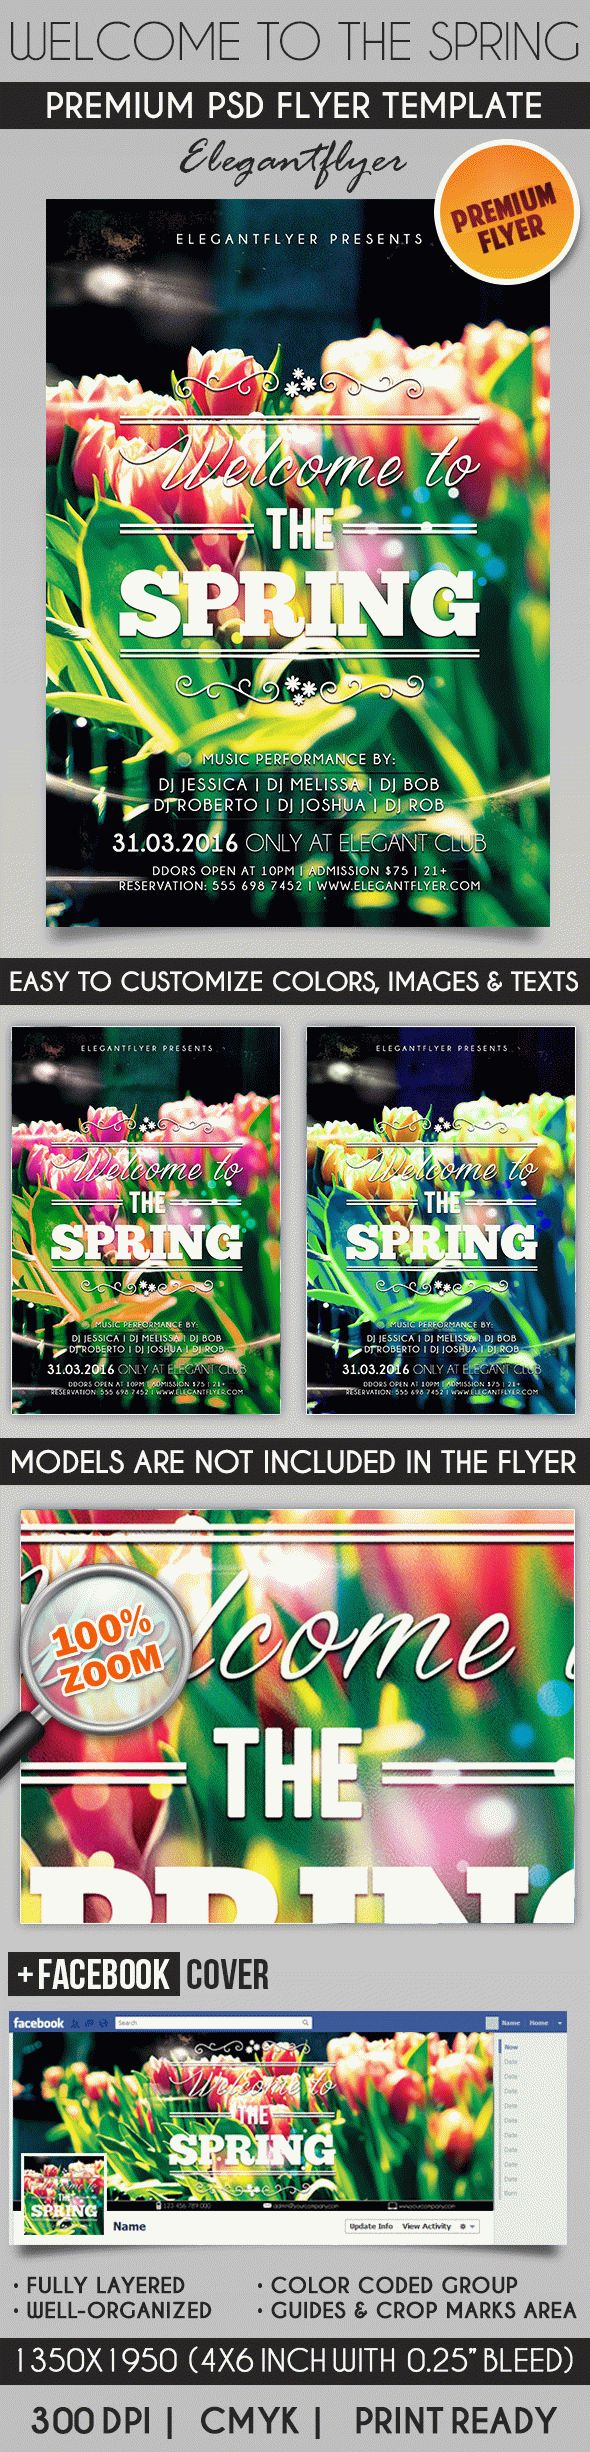 Welcome to the Spring – Flyer PSD Template + Facebook Cover